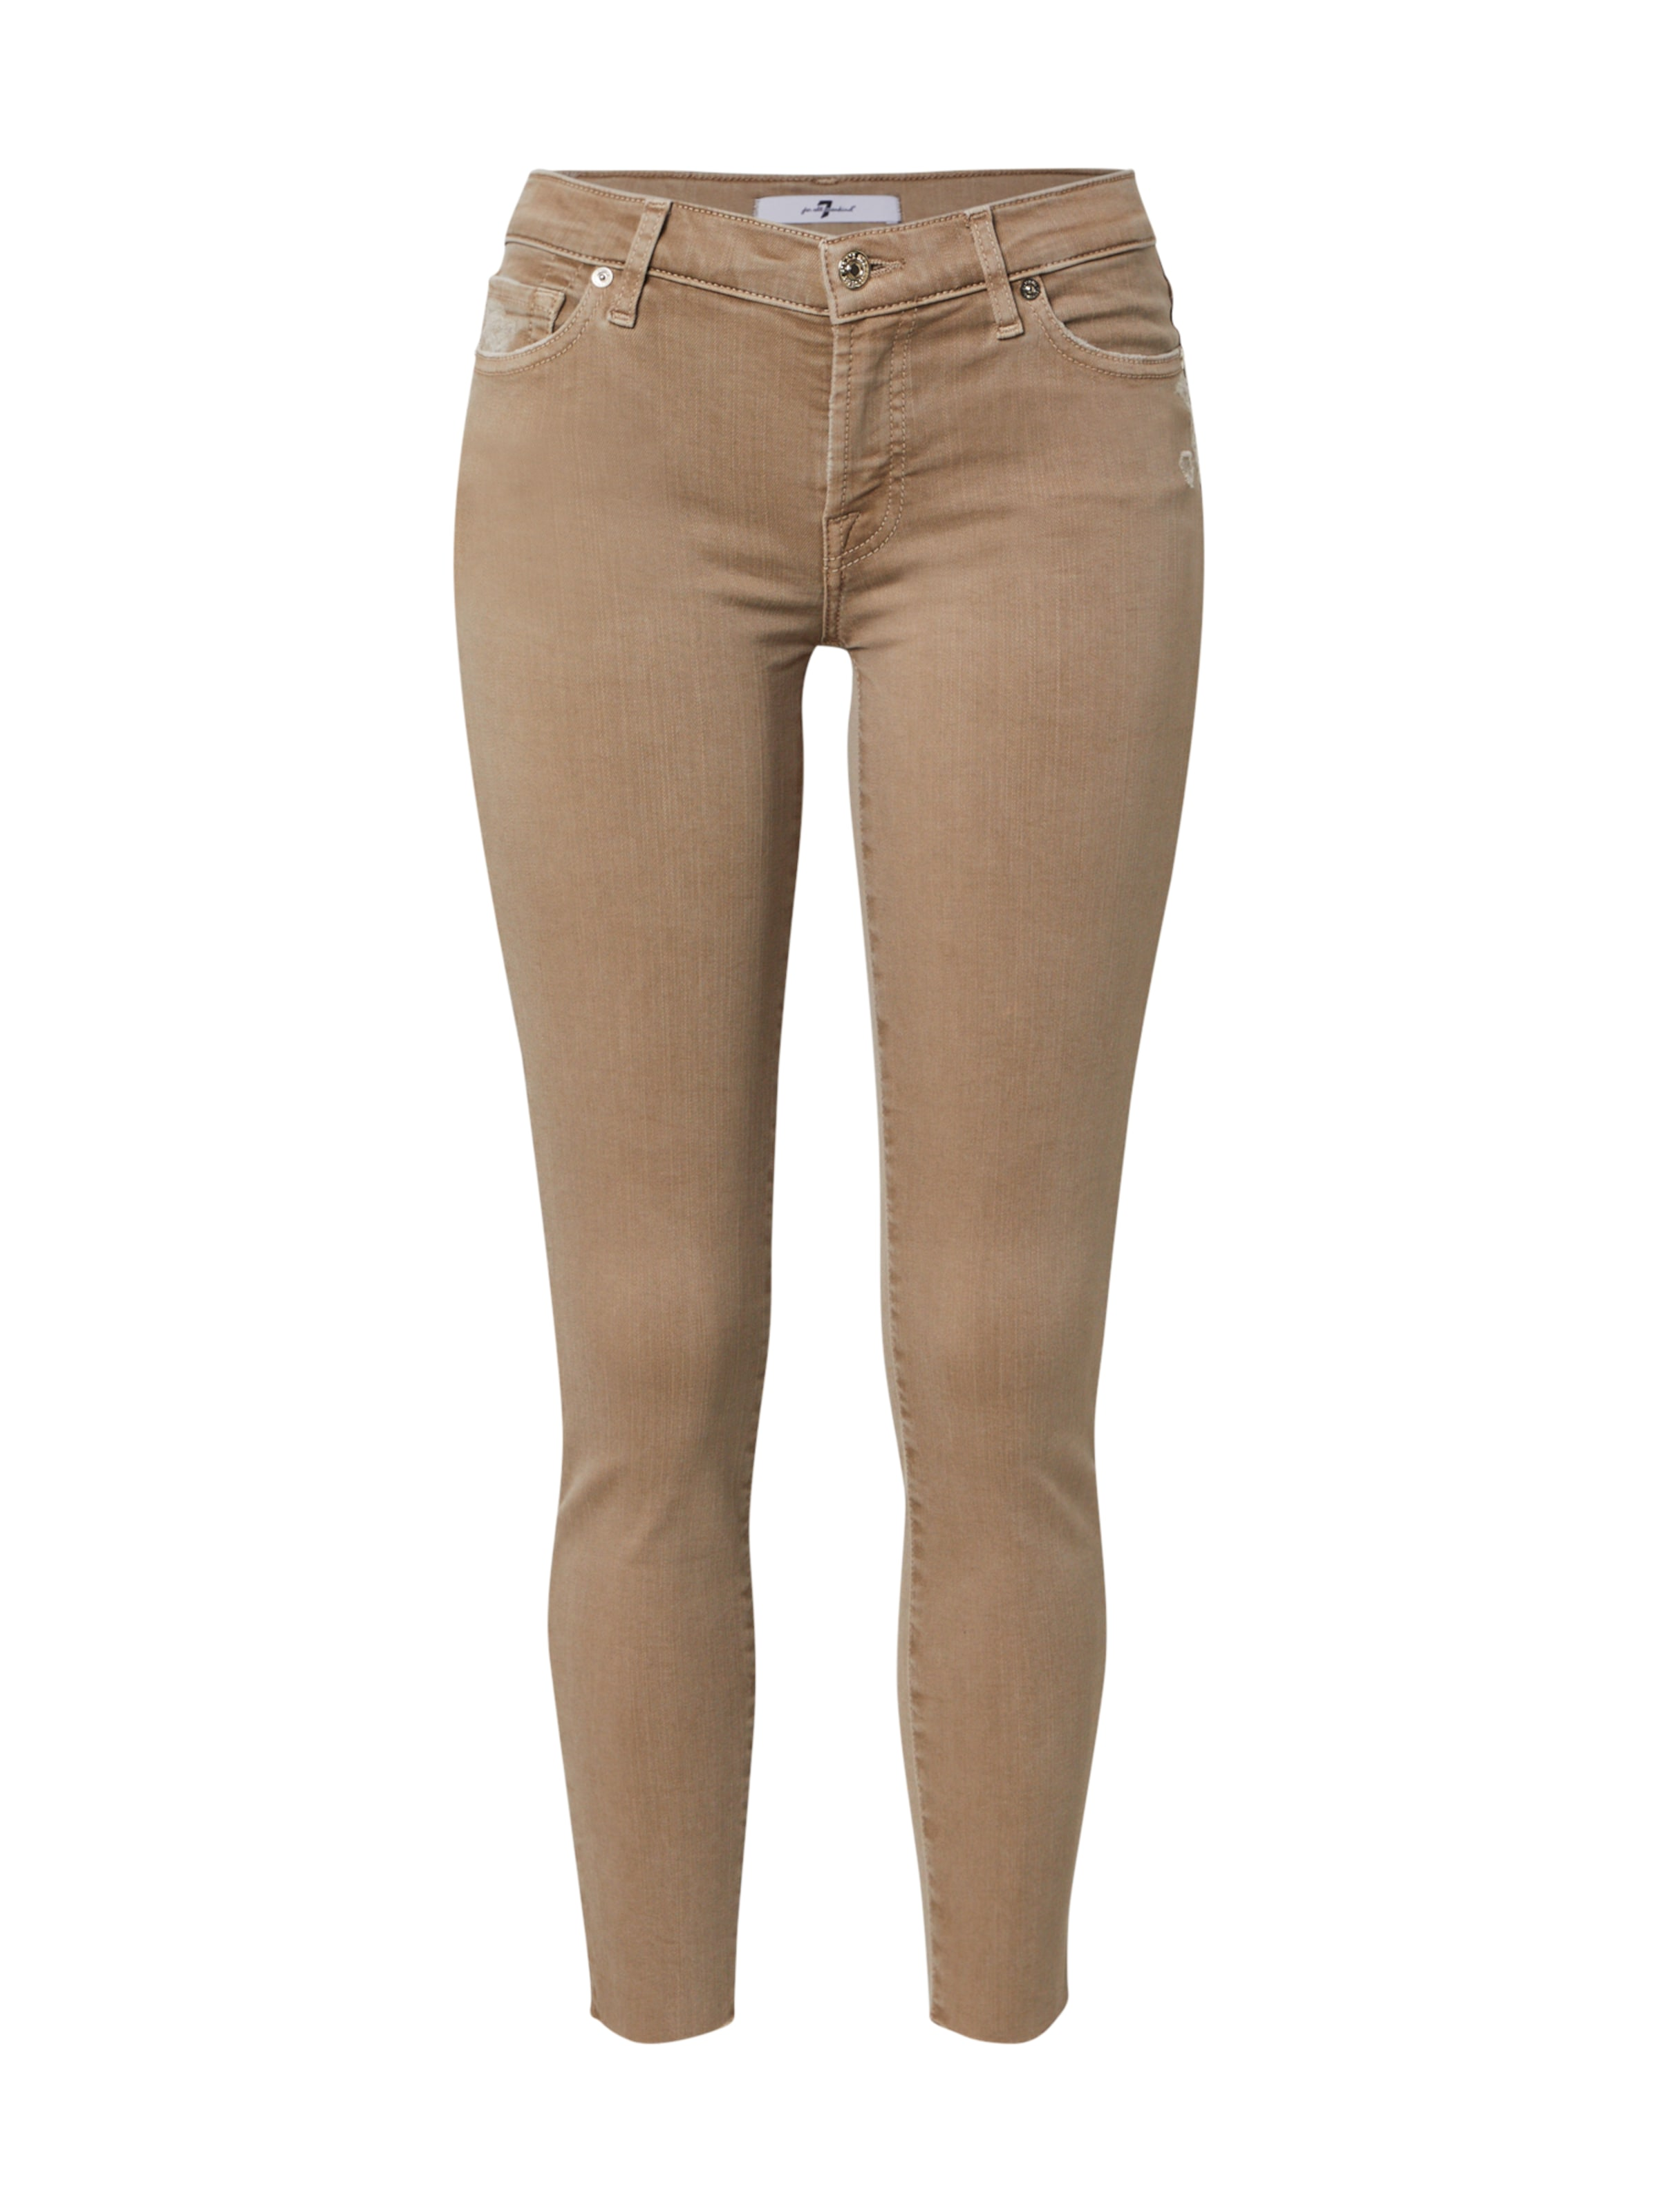 7 for all mankind Jeans i sand